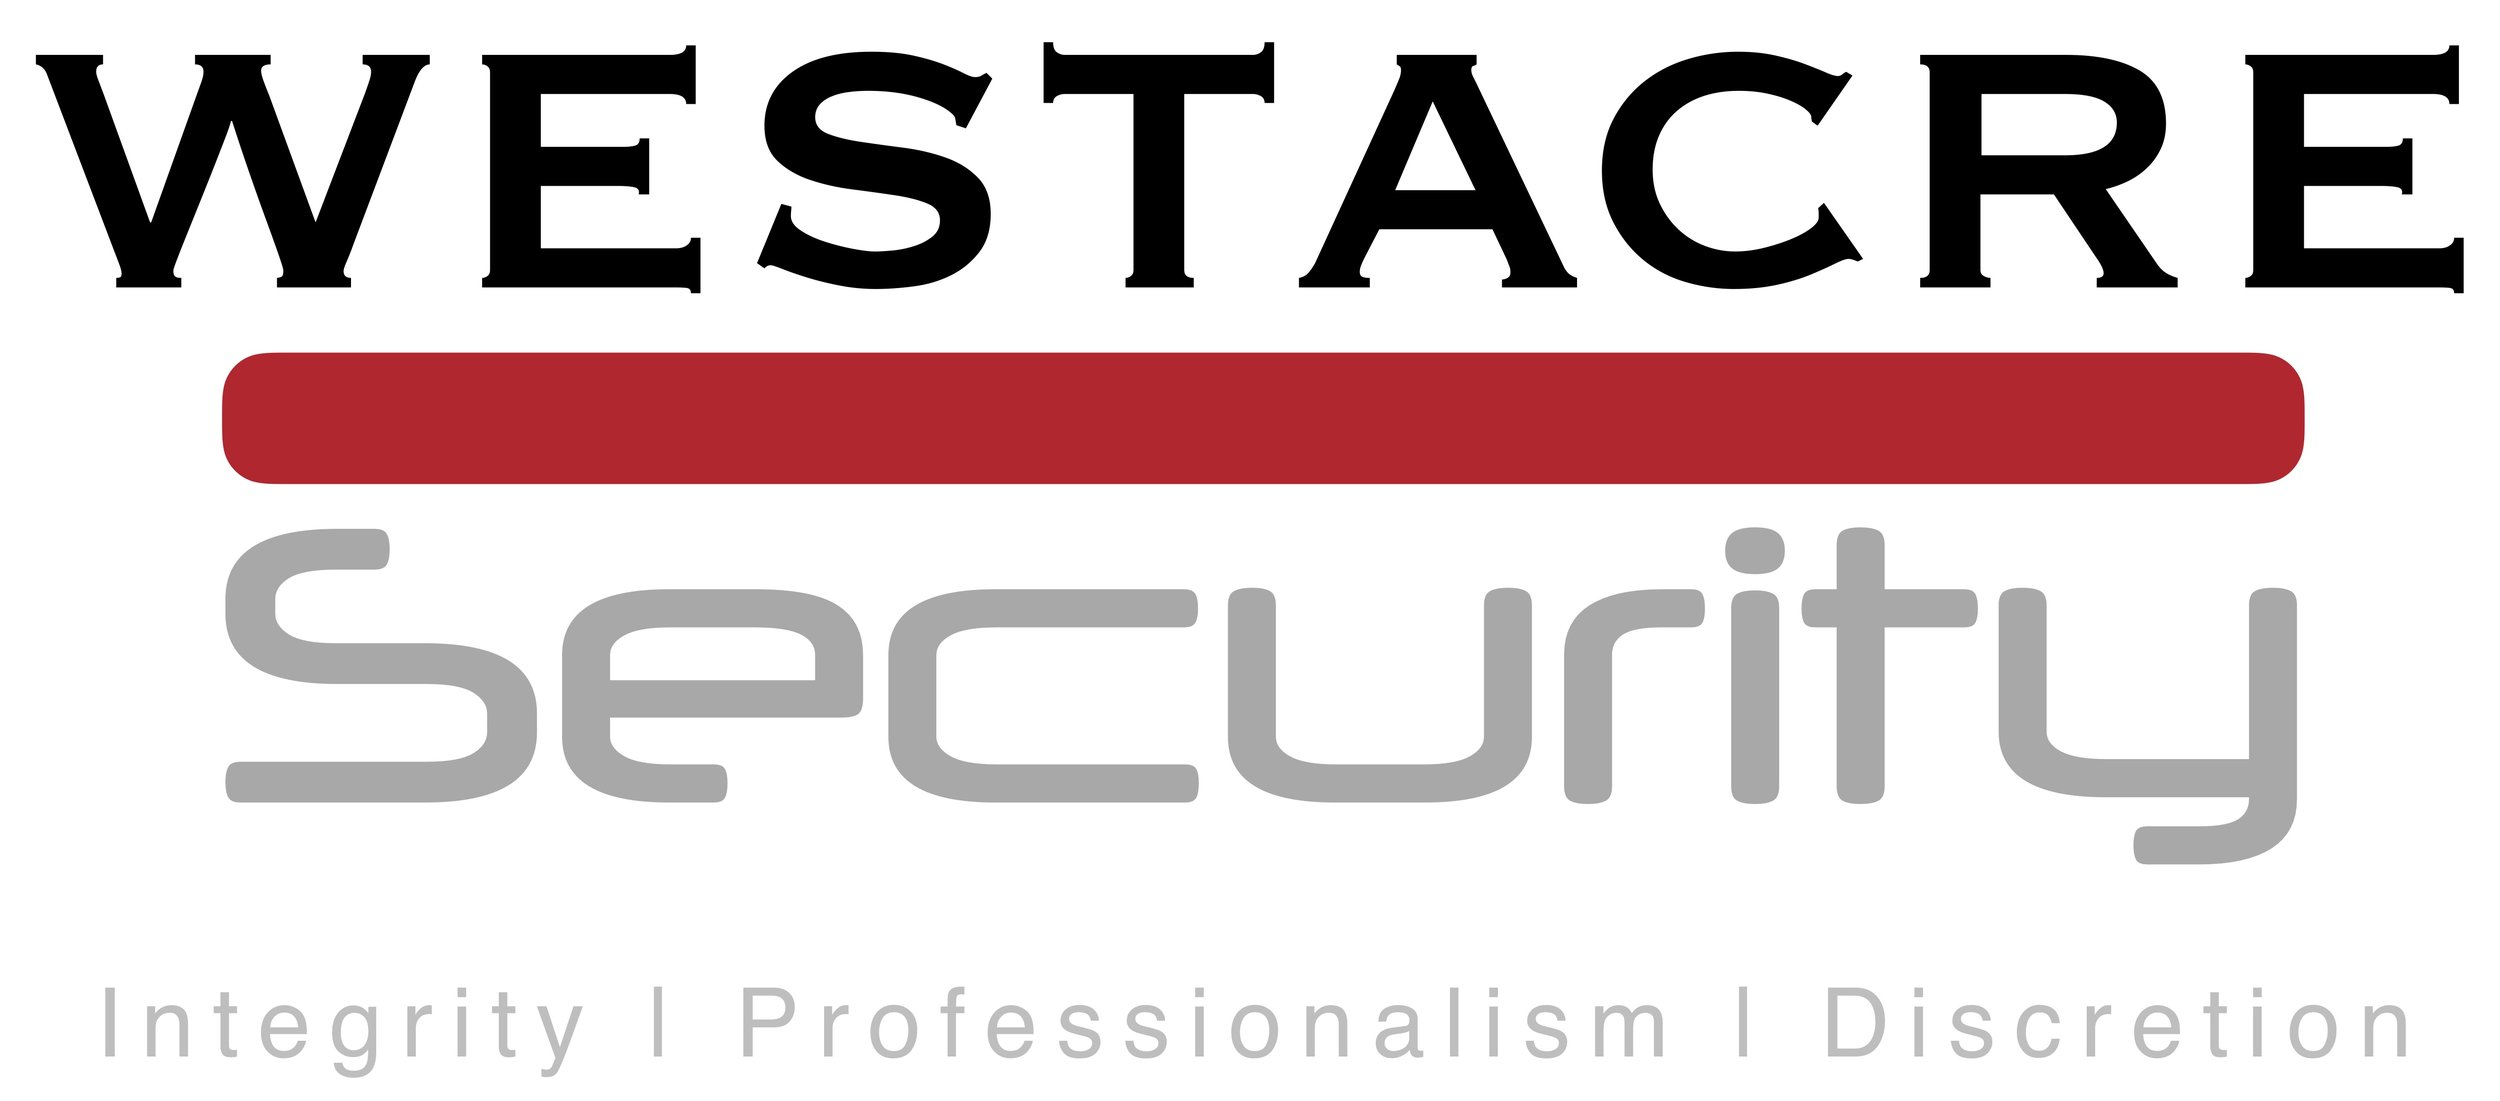 WESTACRE SECURITY INTEG:PROF:DISC.jpg